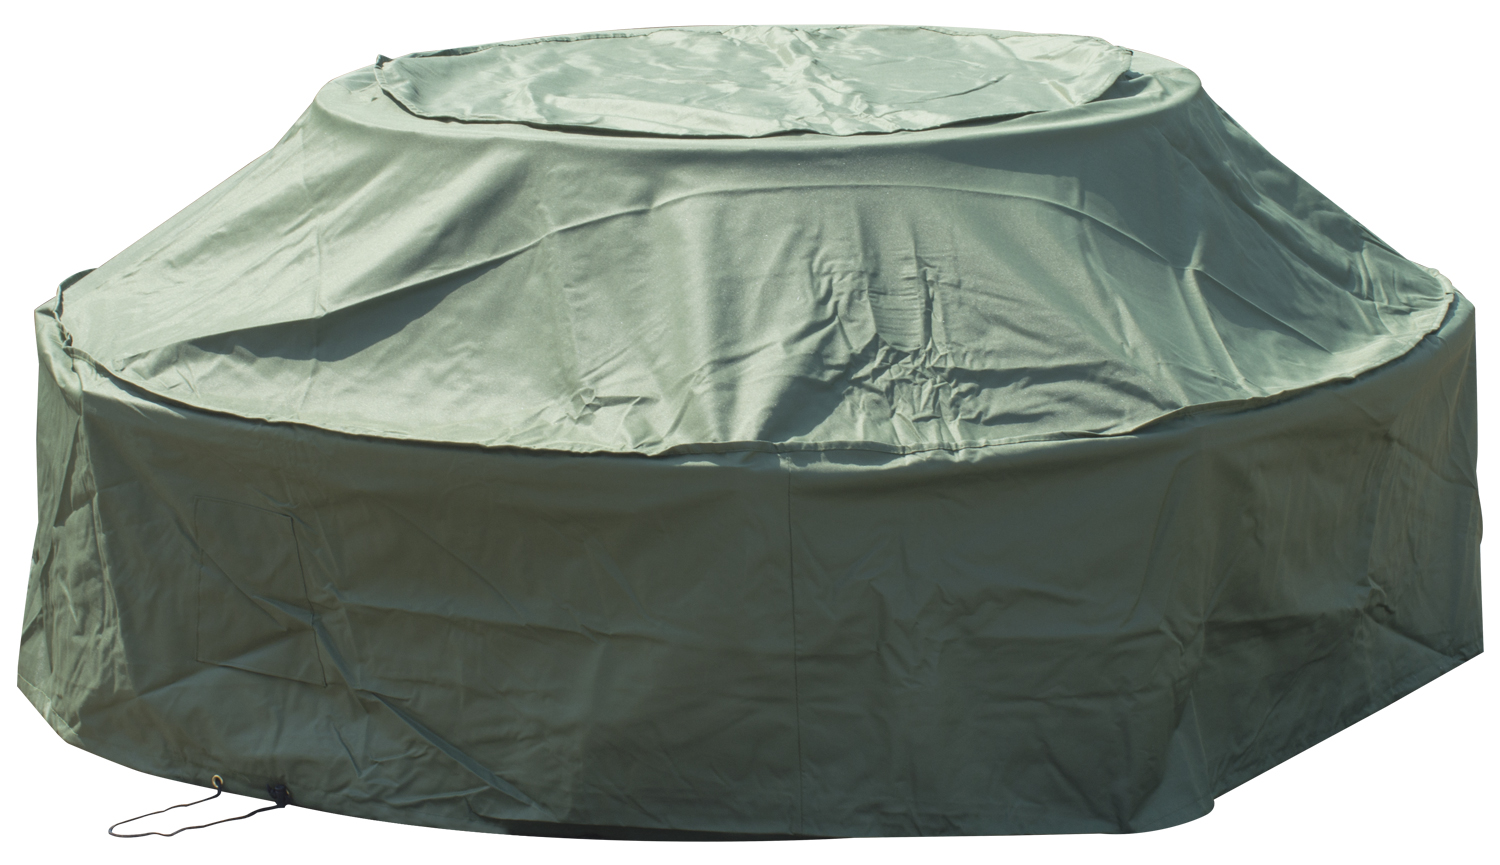 Woodside Seater Round Picnic Table Cover GREEN Covers Outdoor - 8 seater round picnic table